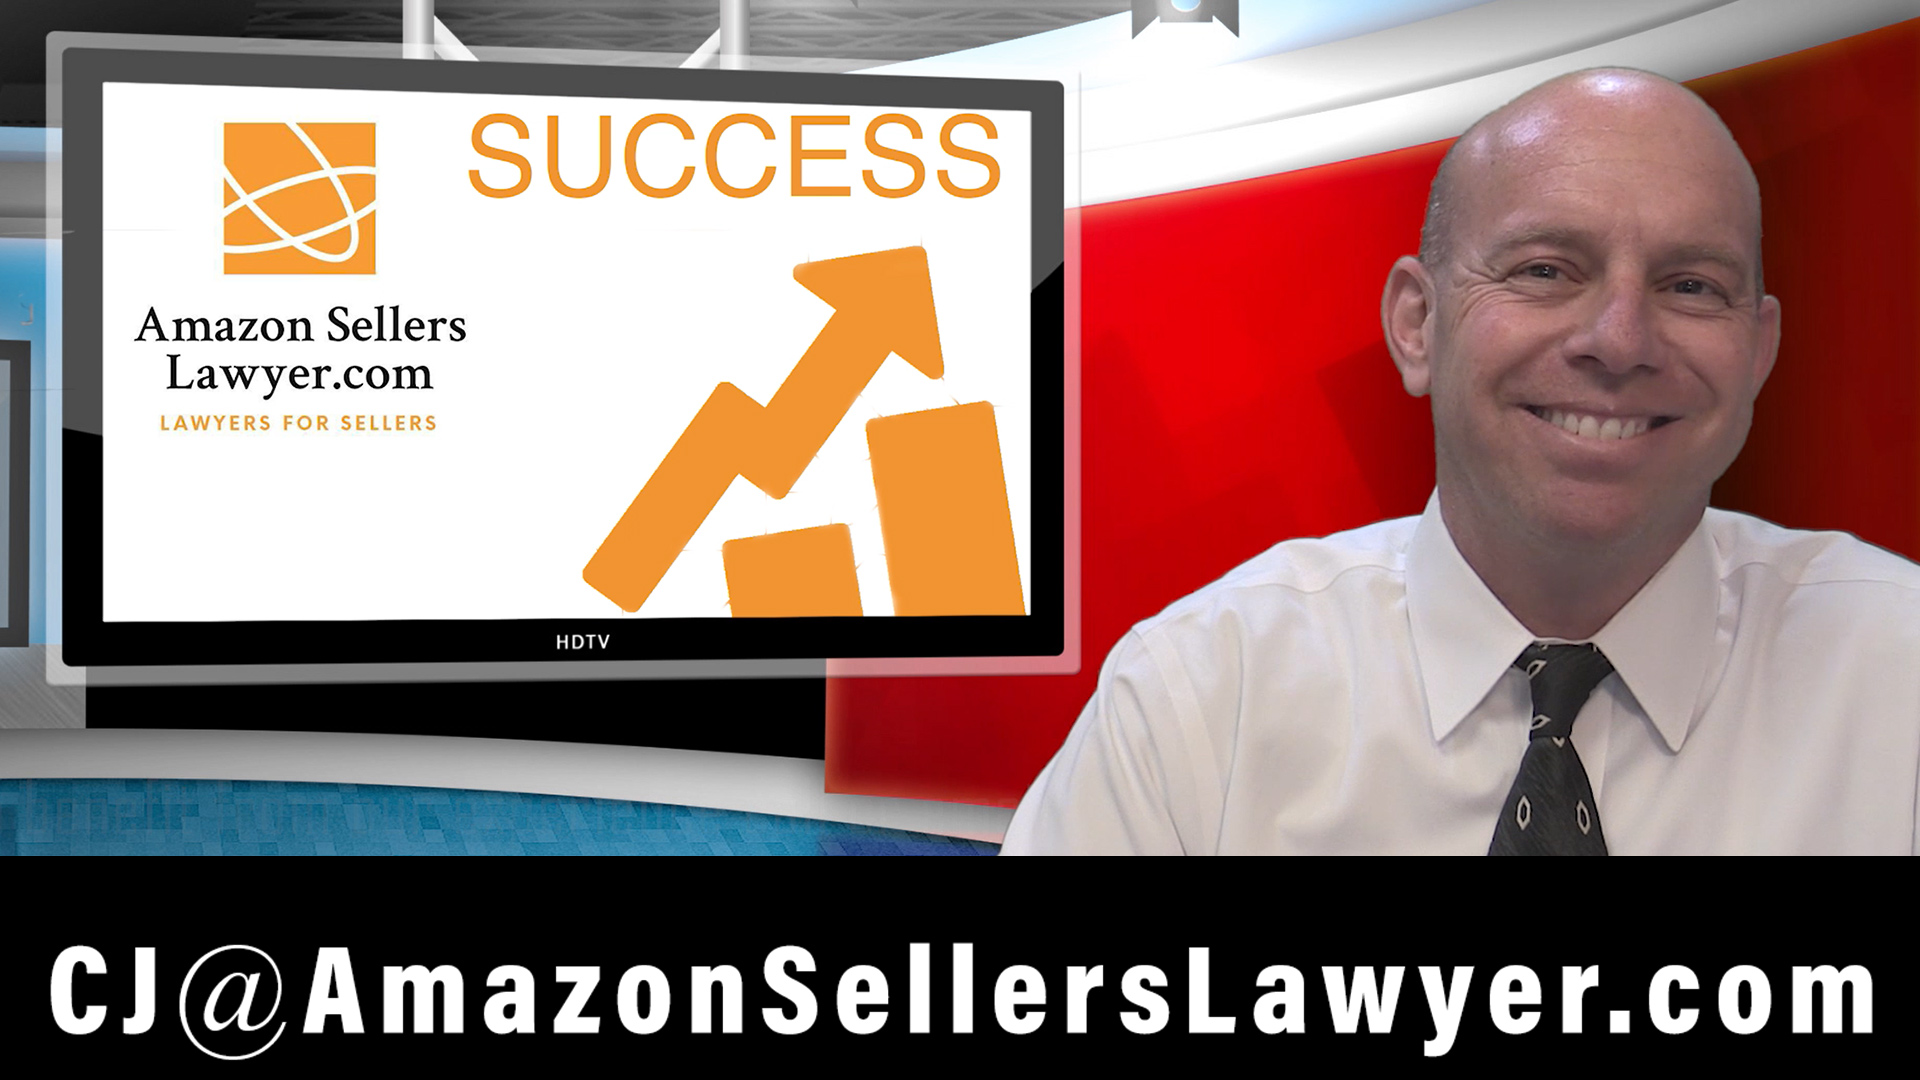 Amazon Seller Sued for Damages Allegedly Caused by Product